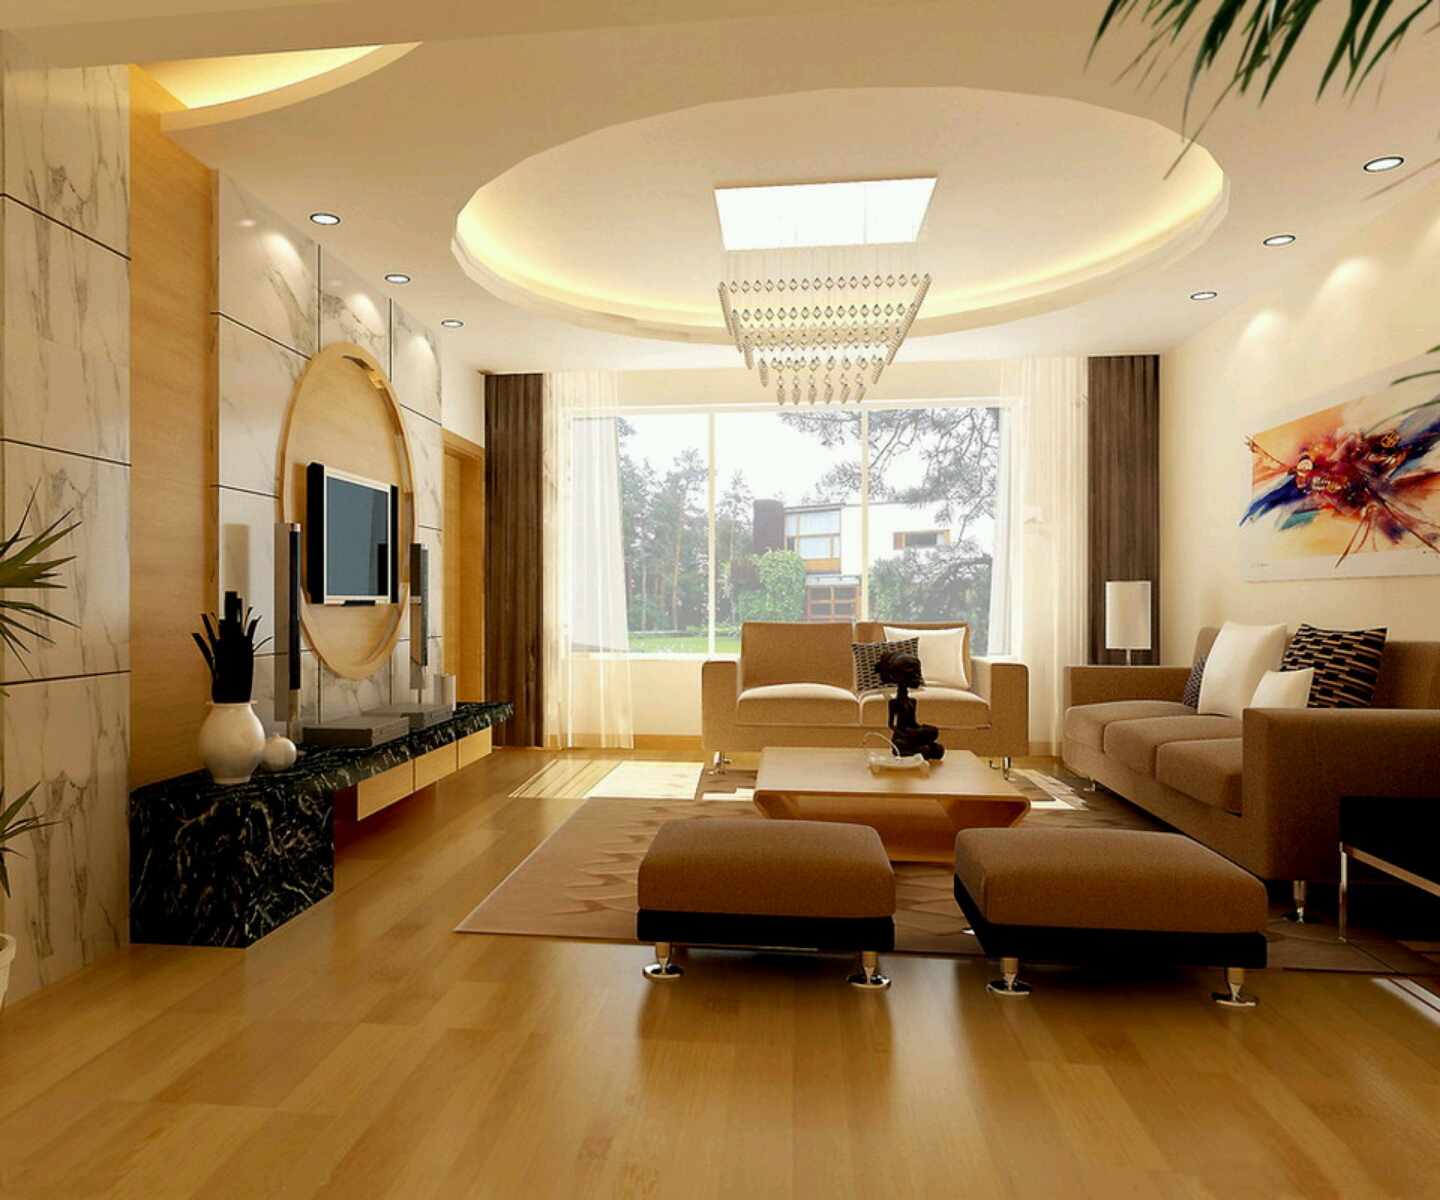 Modern interior decoration living rooms ceiling designs ideas new home designs - Living room decor modern ...